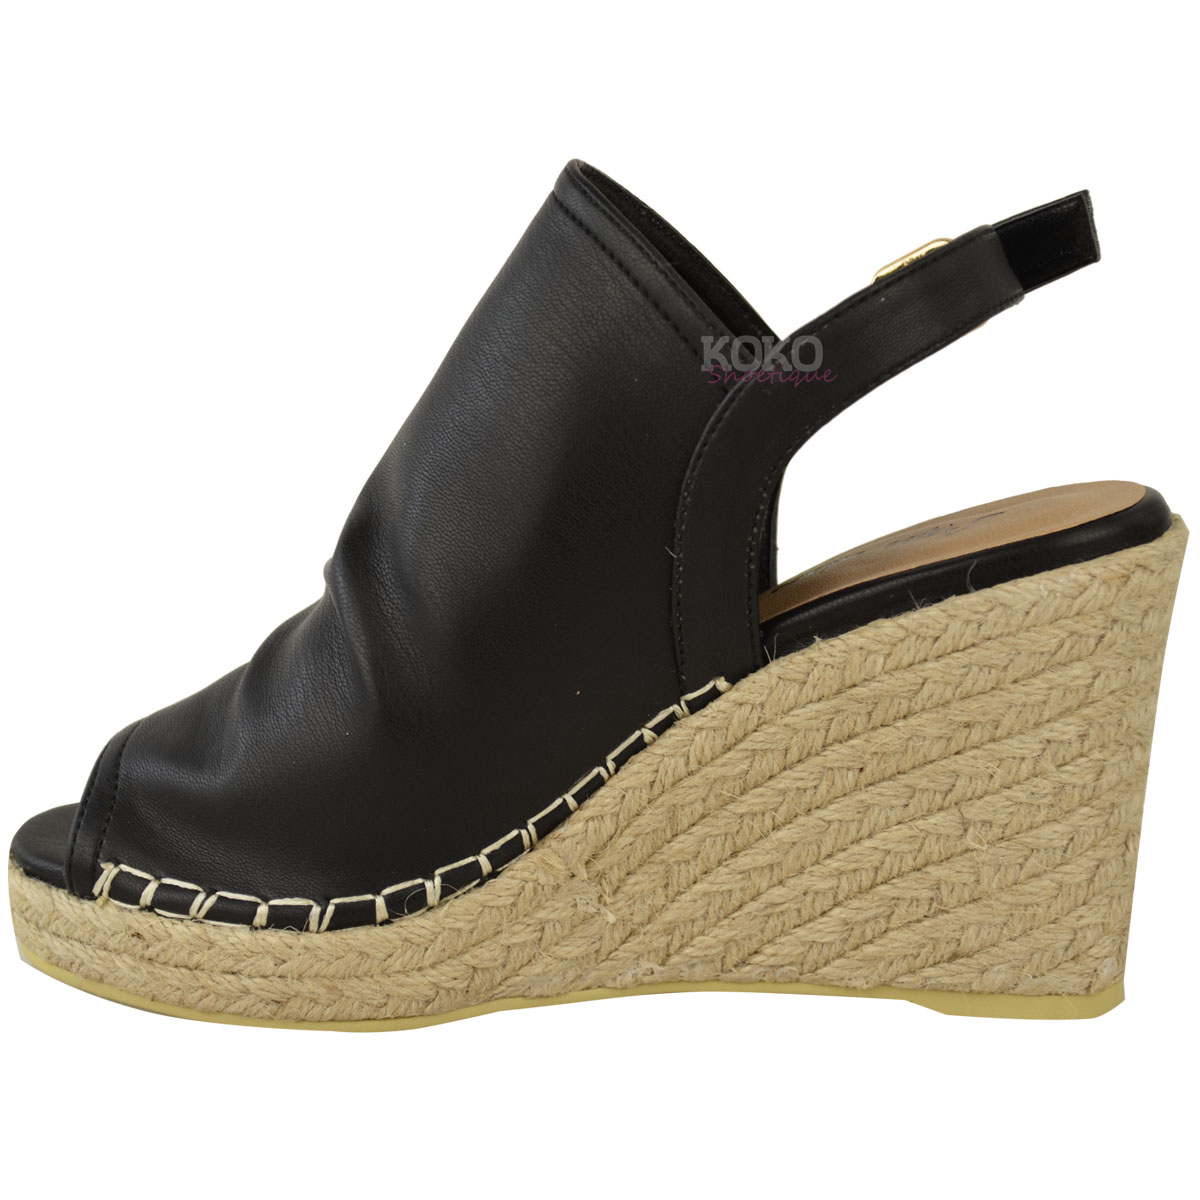 Find great deals on eBay for low wedge womens shoes. Shop with confidence.